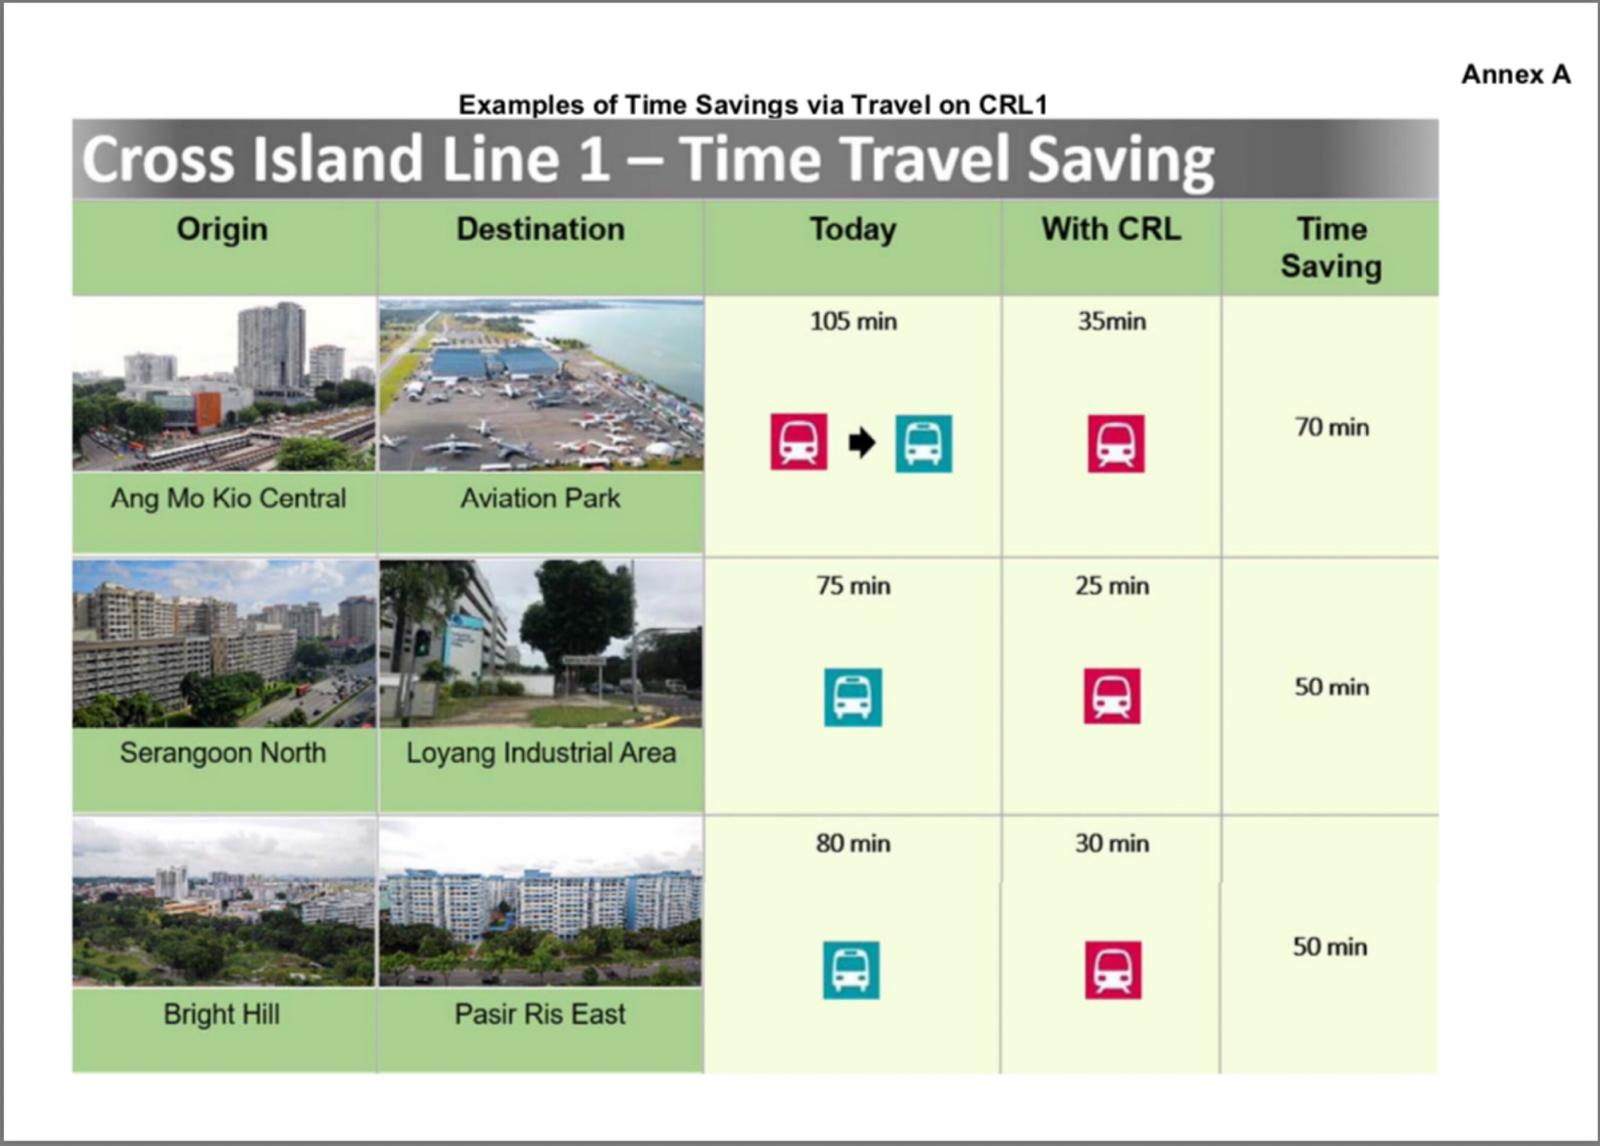 Cross Island Line saving time